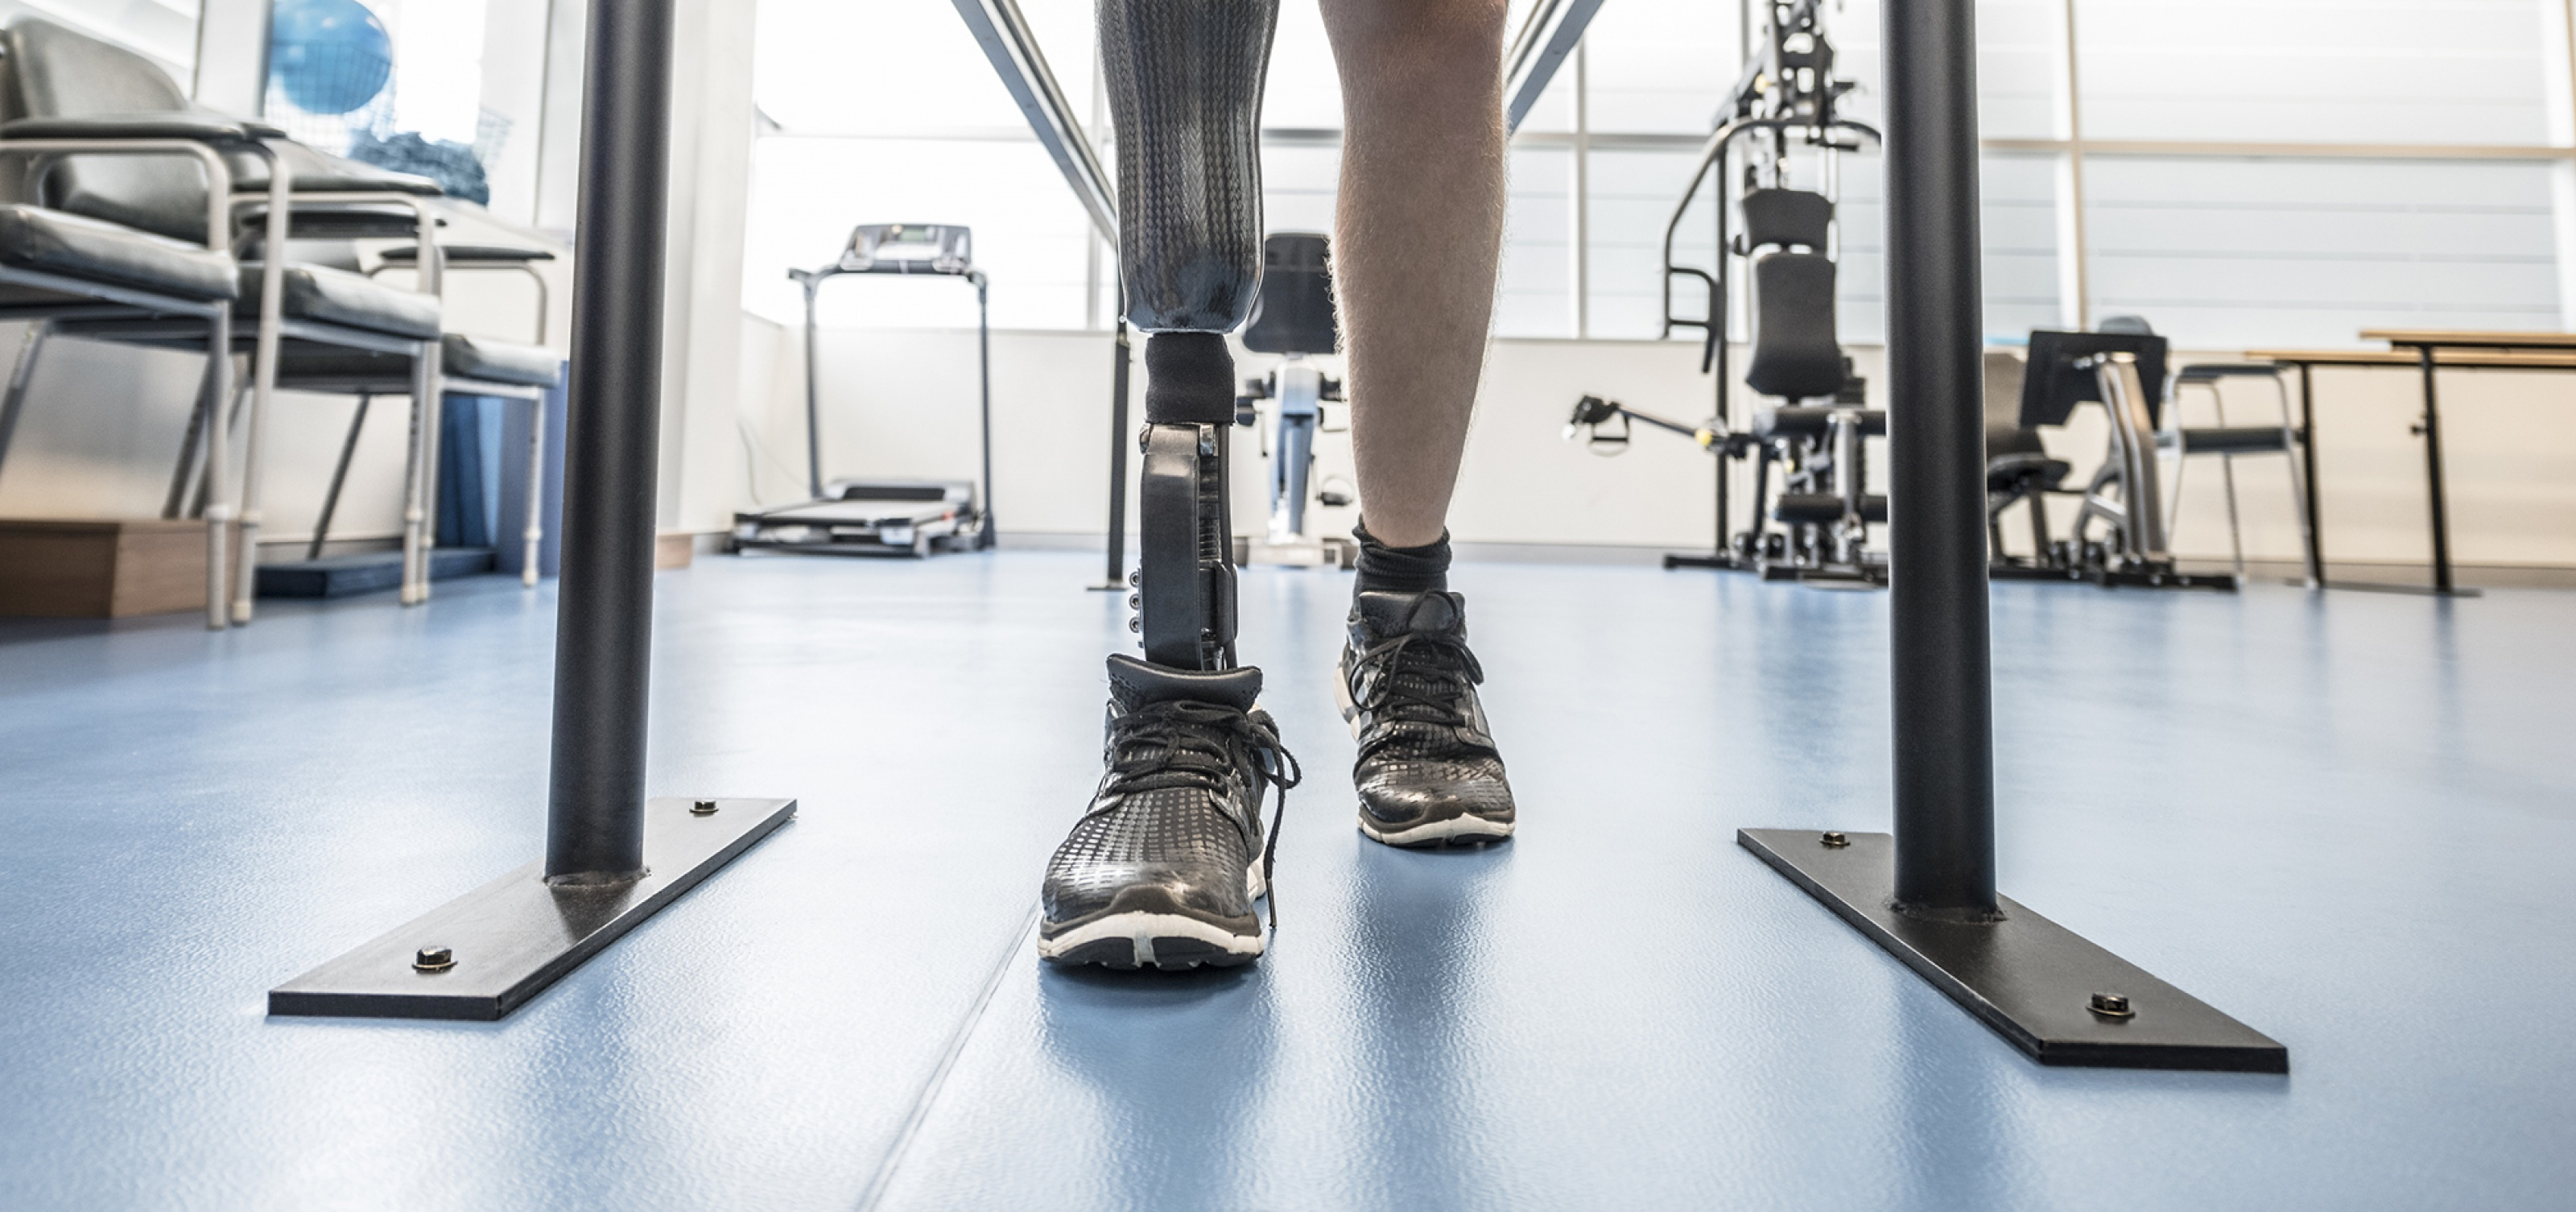 Scientists finally create prosthetic leg lets amputees